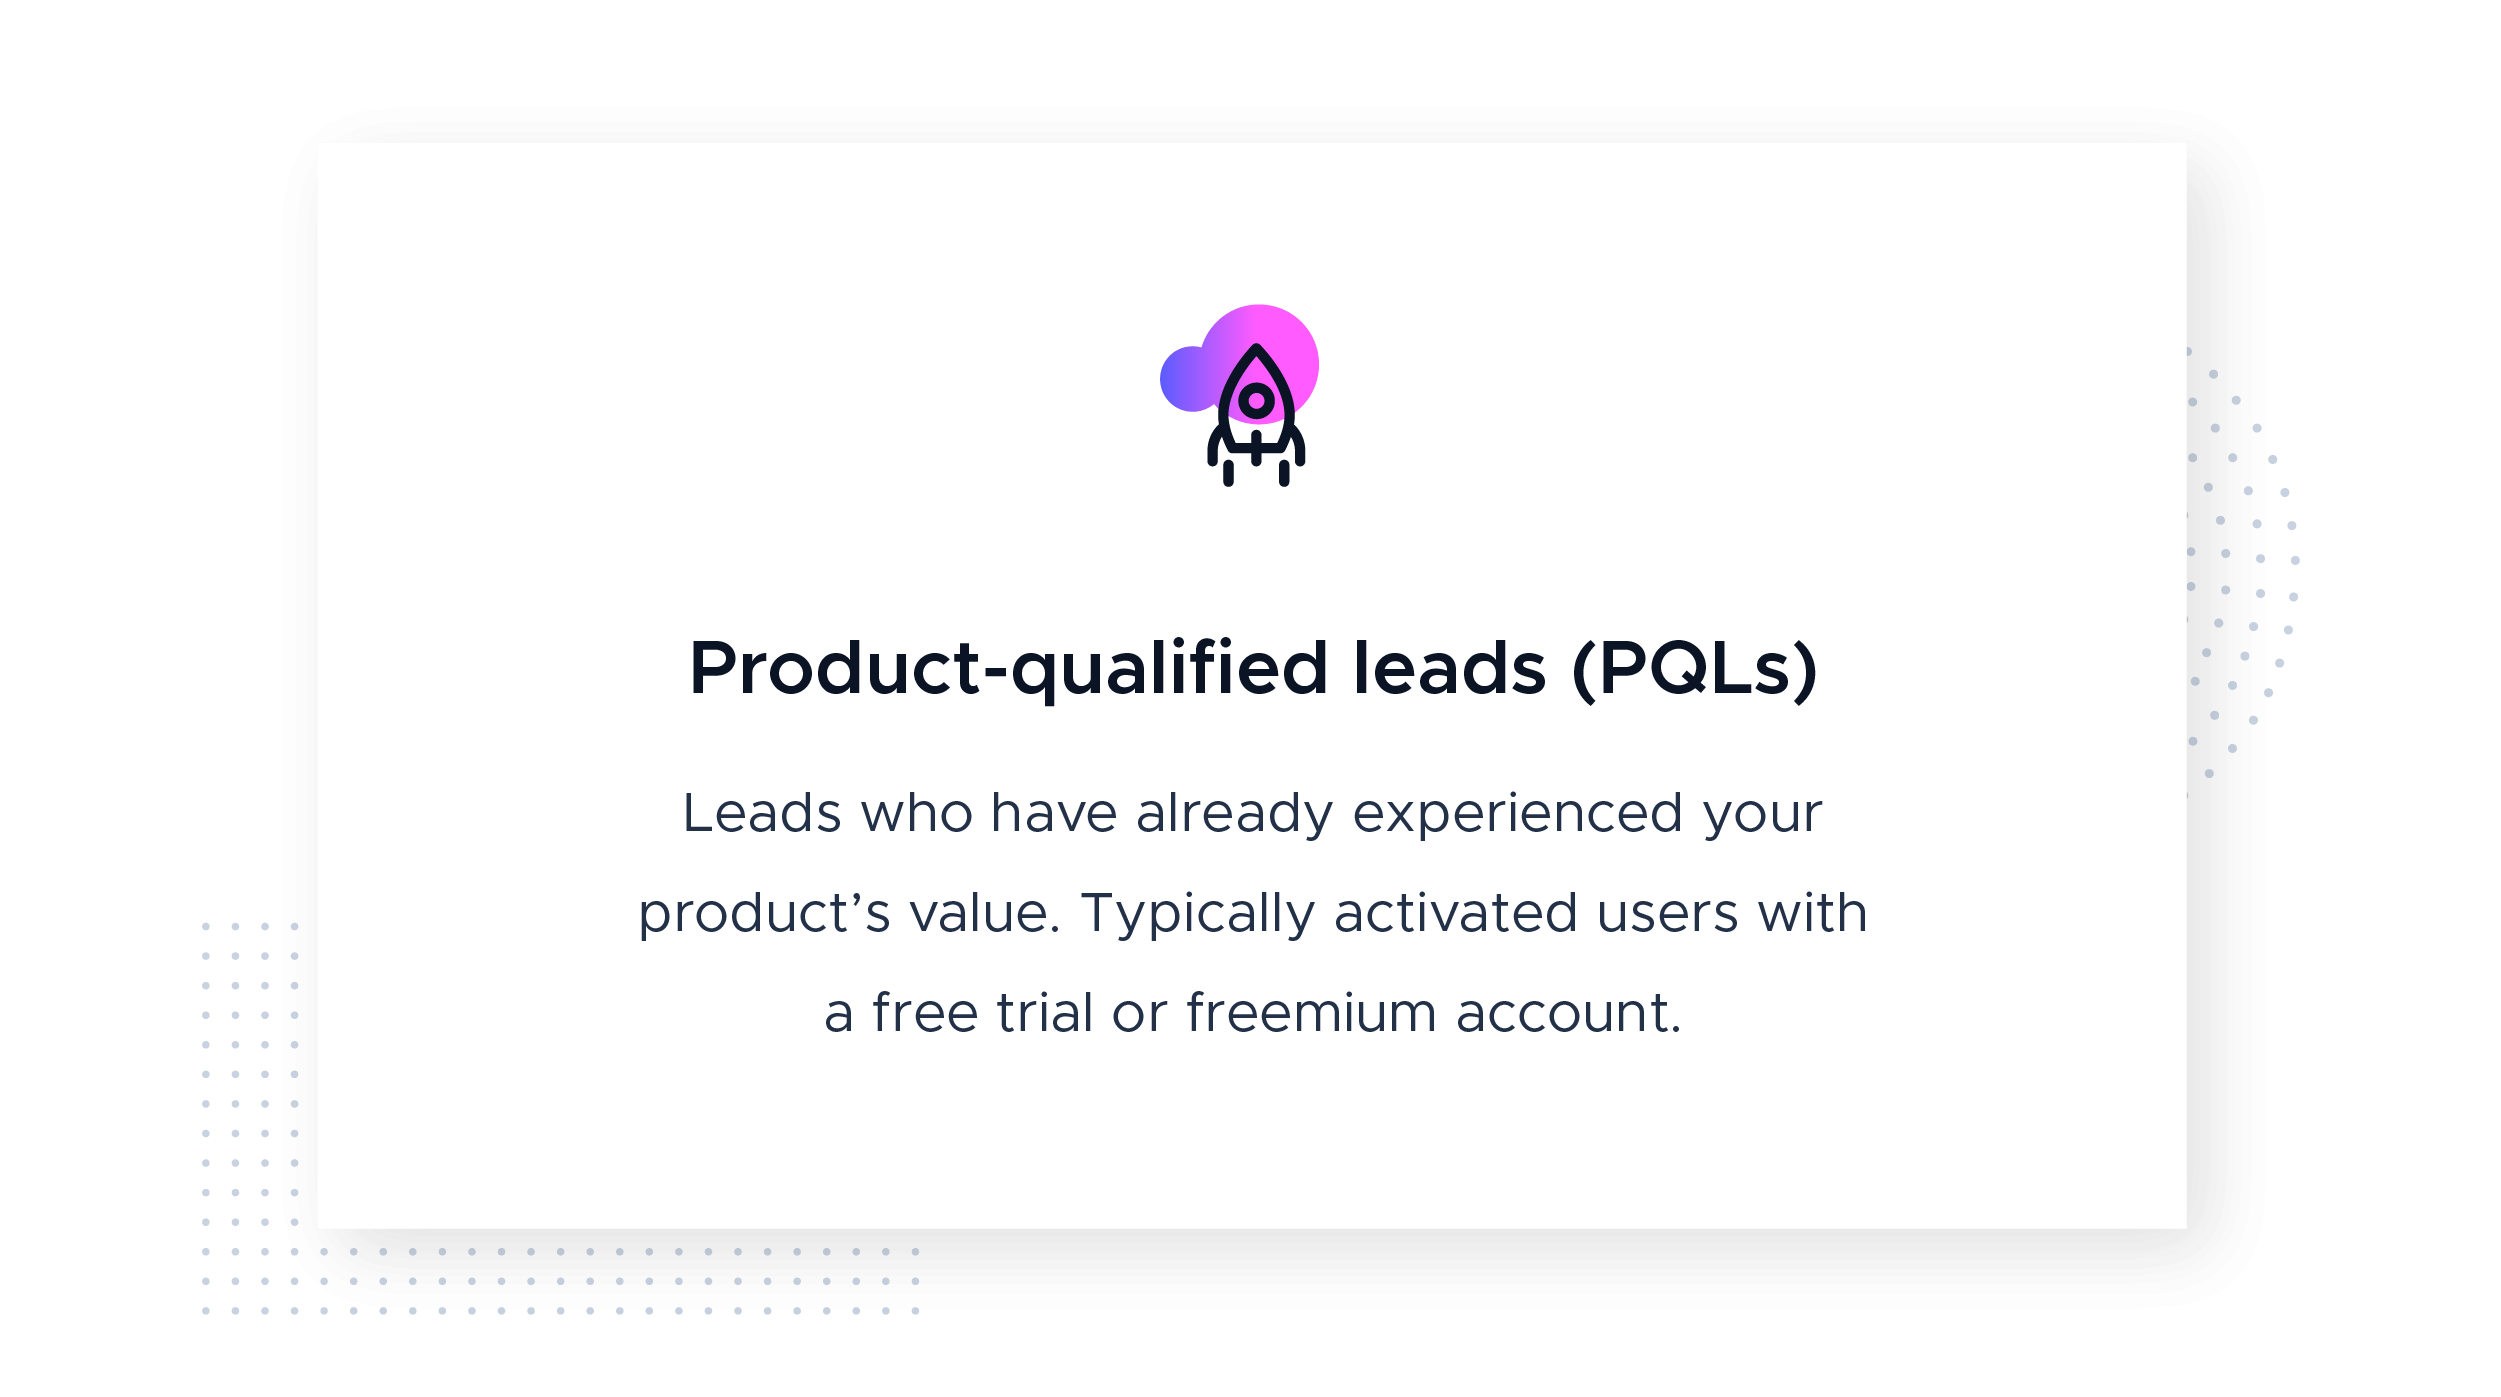 Product-qualified leads definition with icon from the Product-Led Growth Collective. This image defines product-qualified leads (PQLs) as leads who have already experienced your product's value. Typically activated users with a free trial or freemium account.